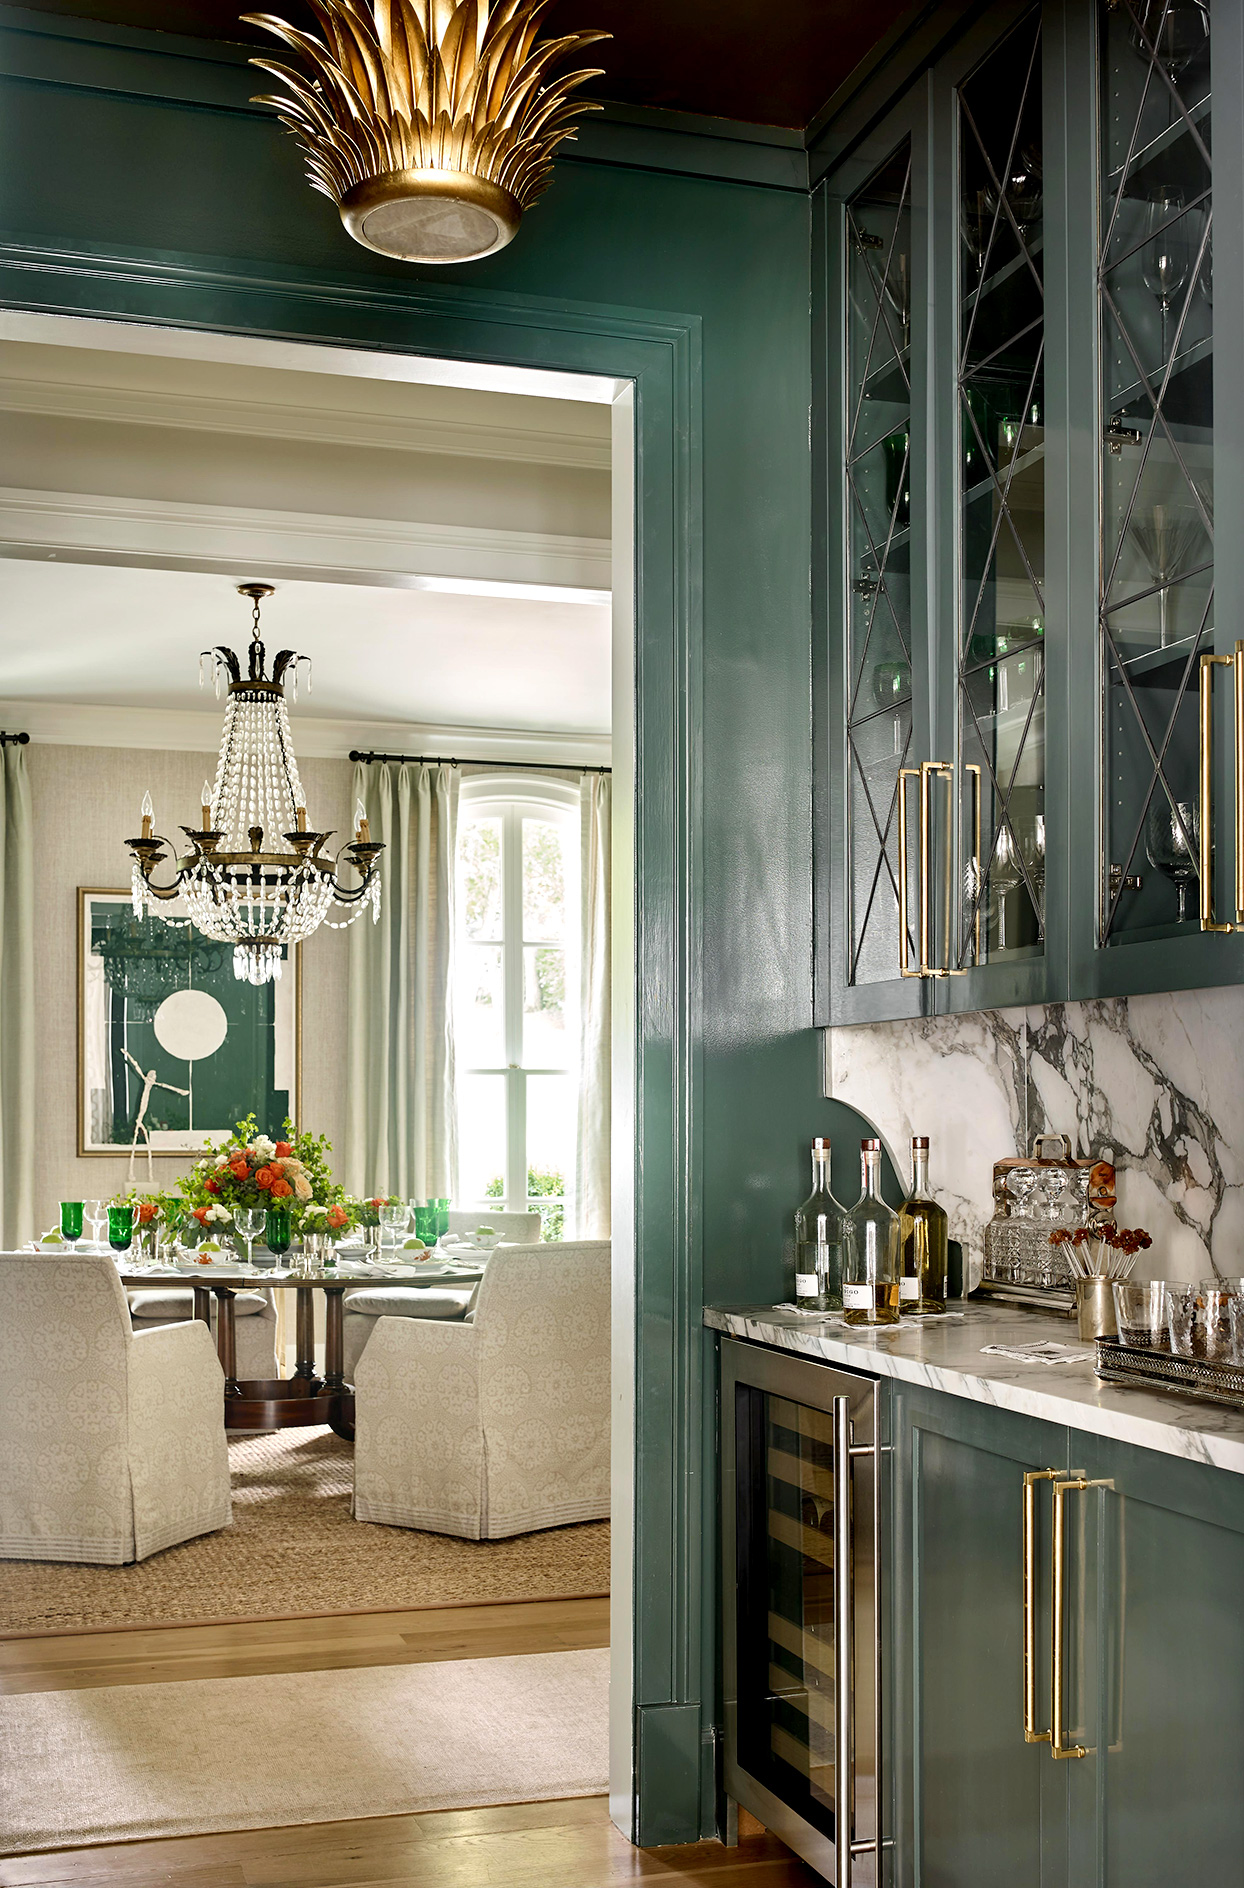 kitchen with green walls and cabinets